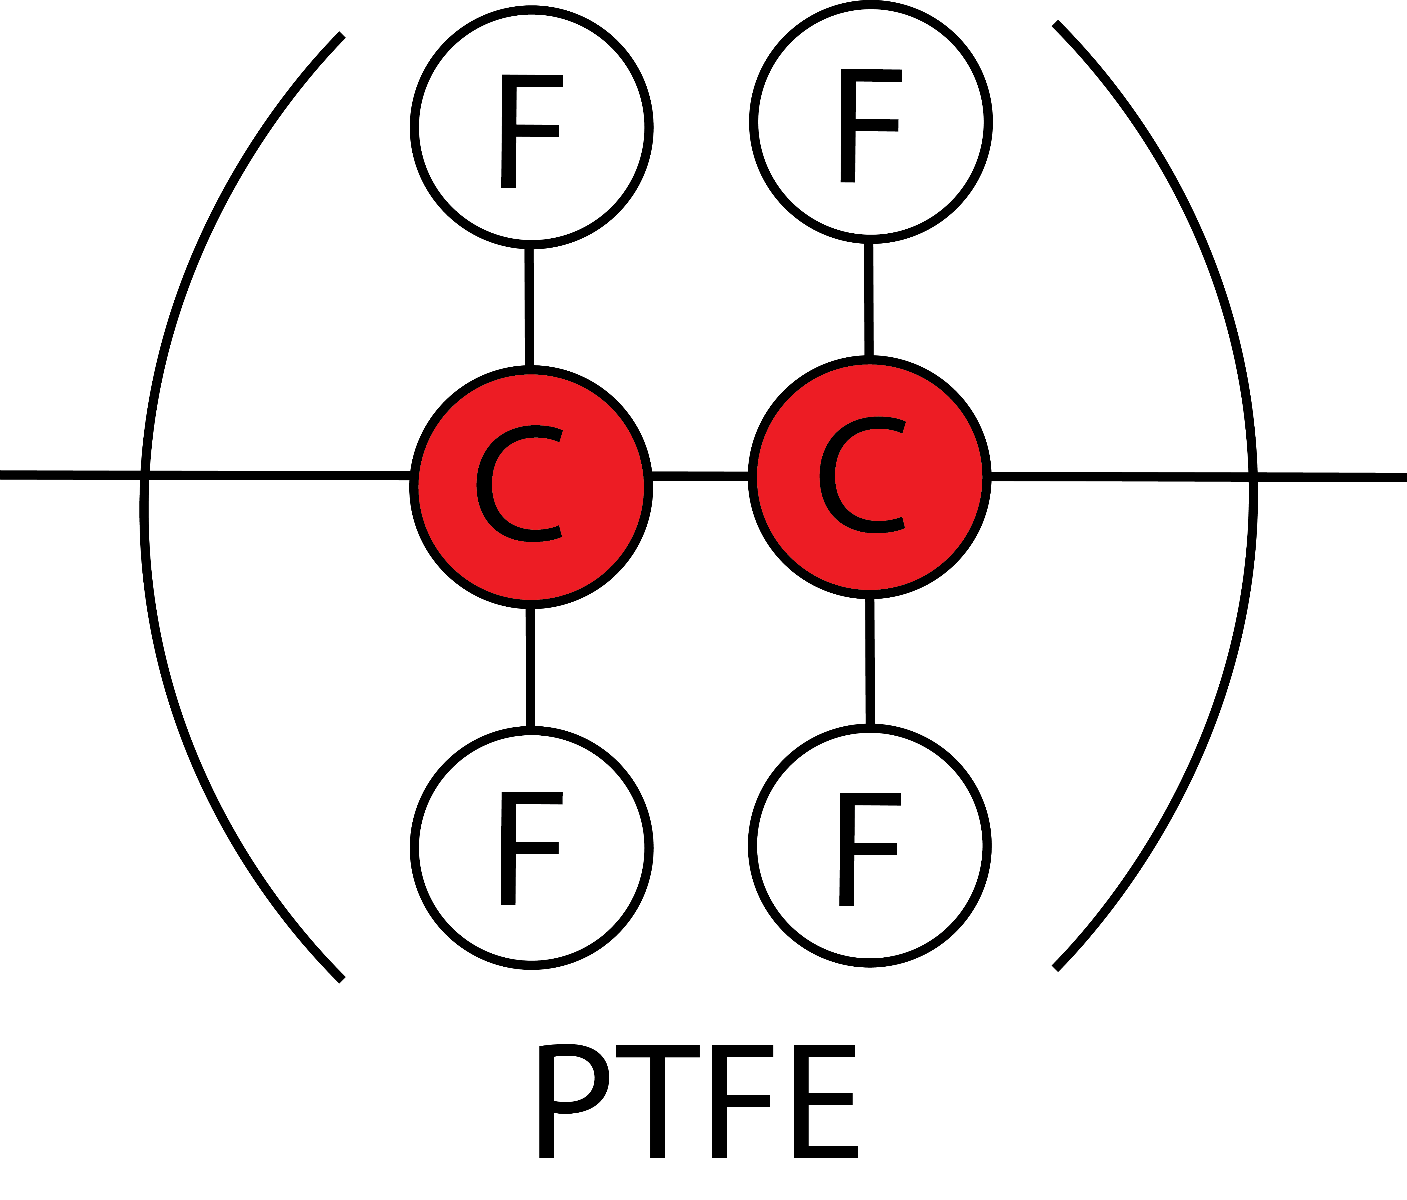 PTFE insulation in a chemical diagram